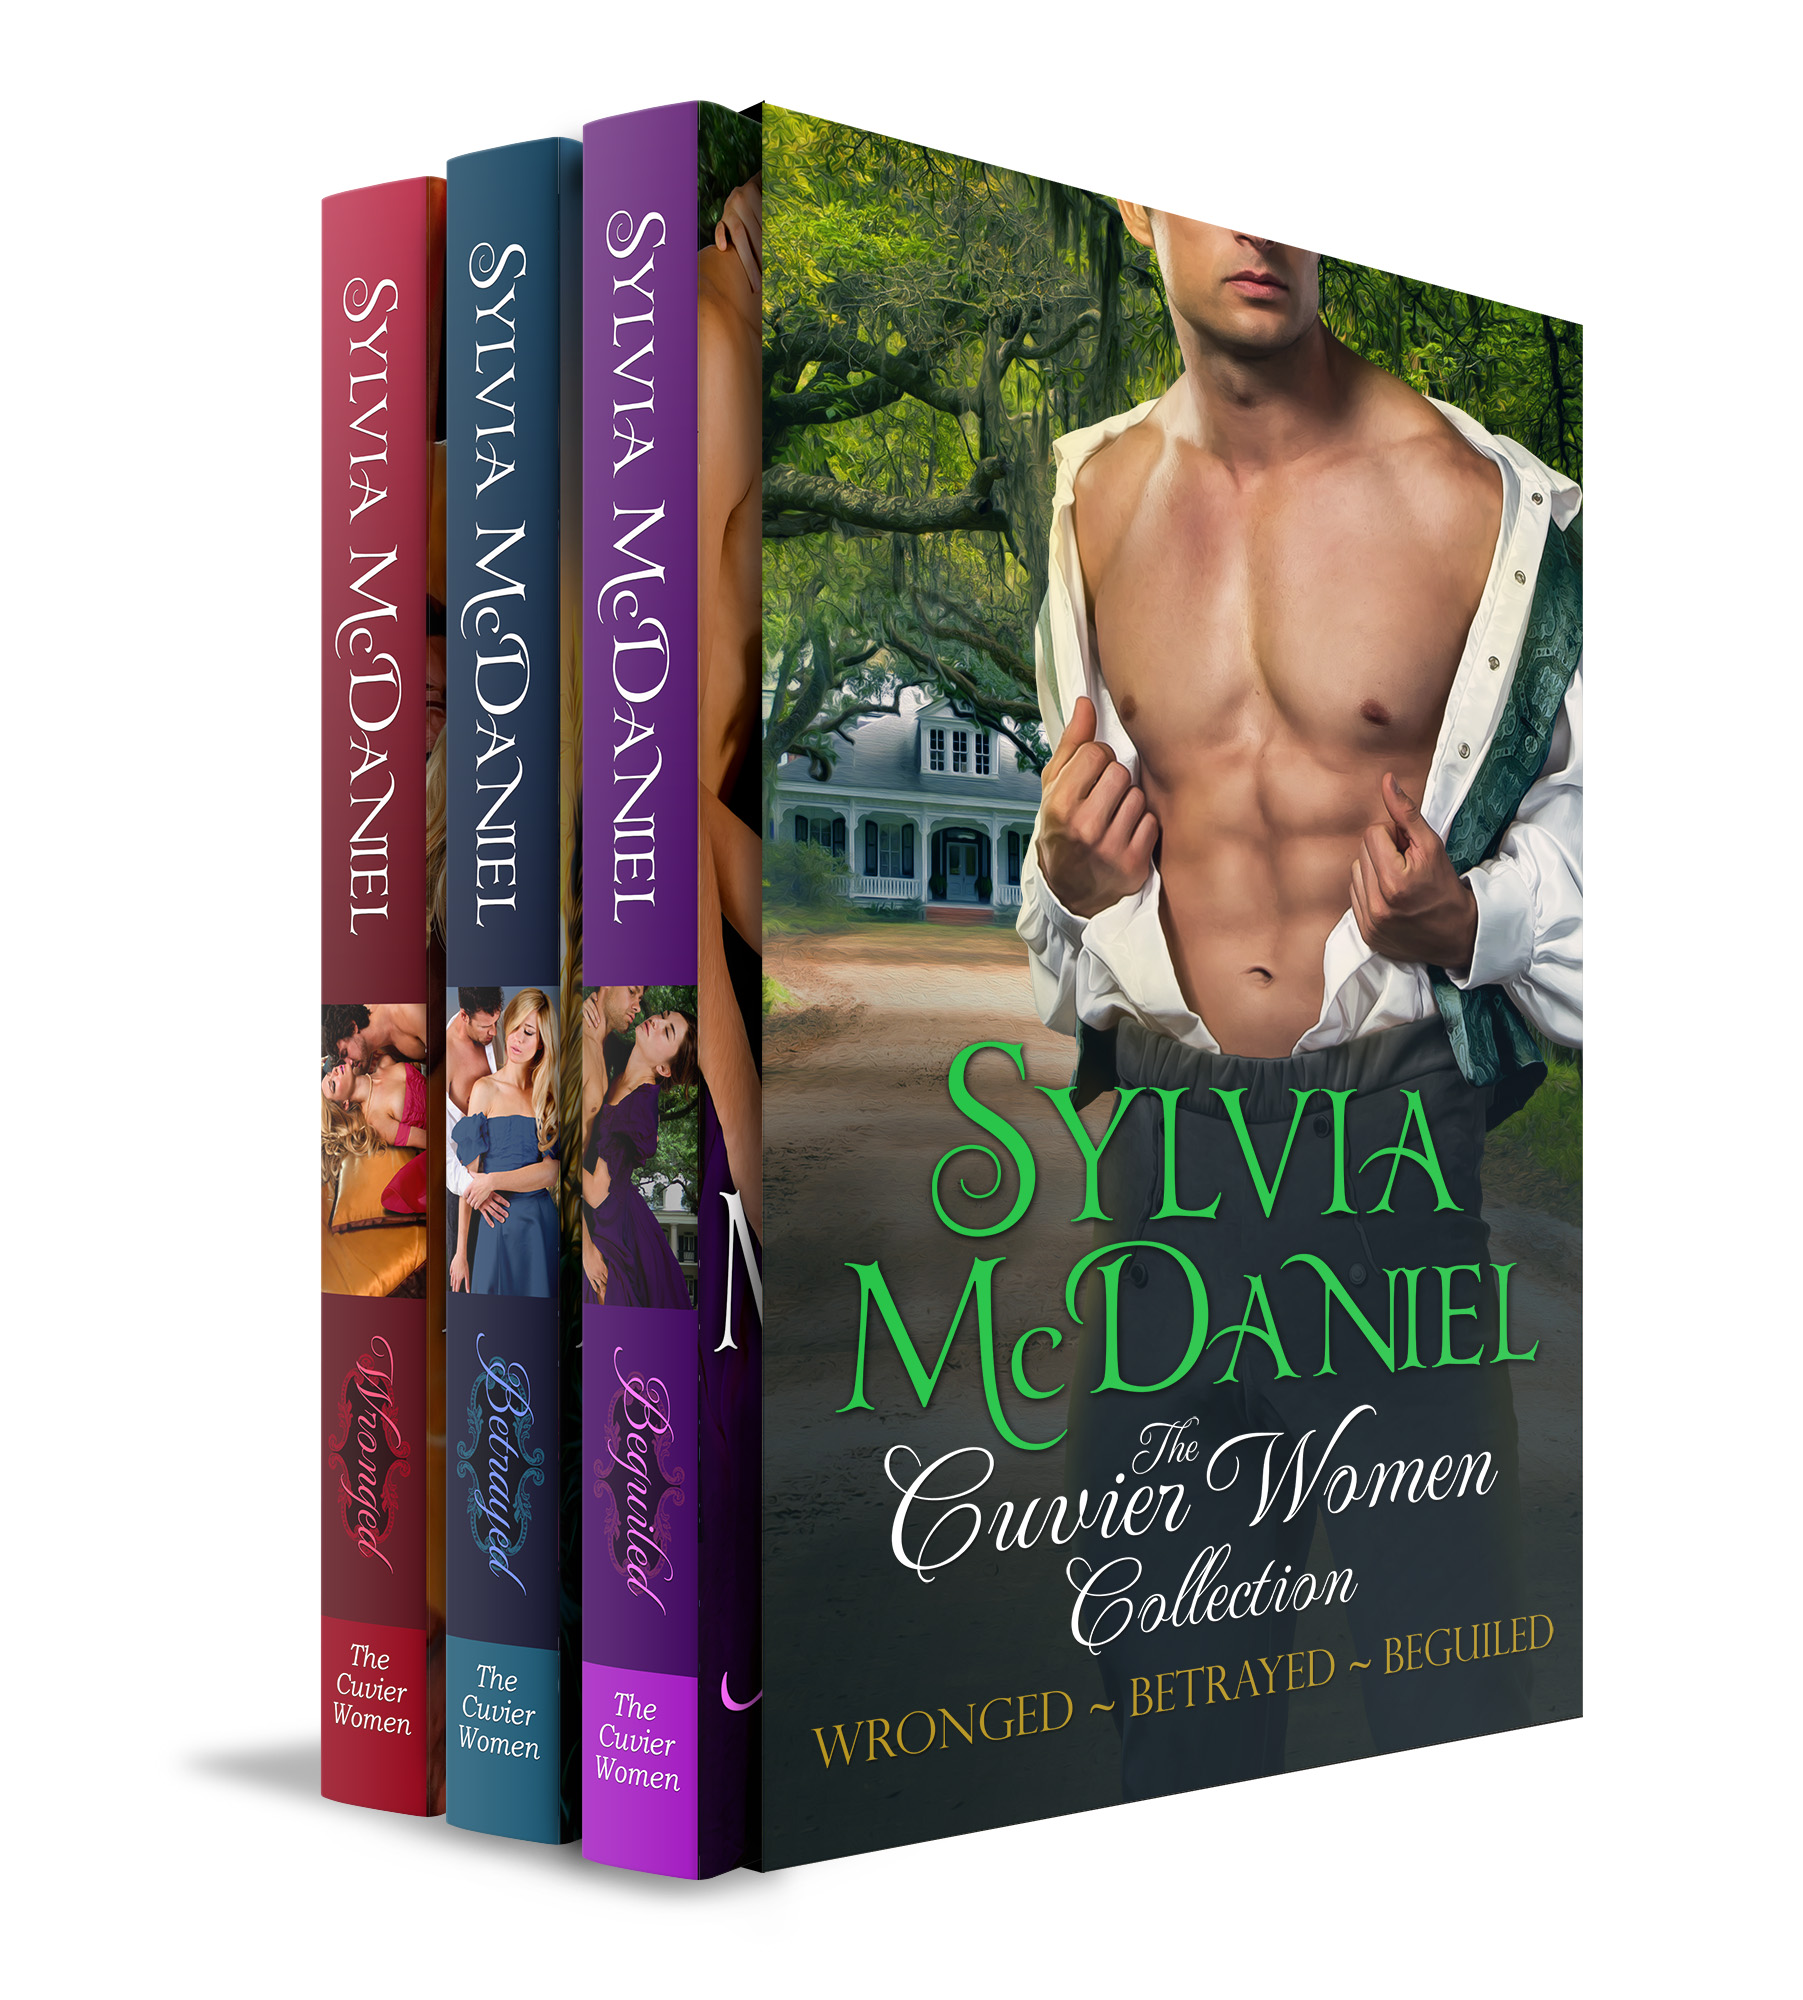 Cover of the Box Set of The Cuvier Women. Naked man chest on the cover.